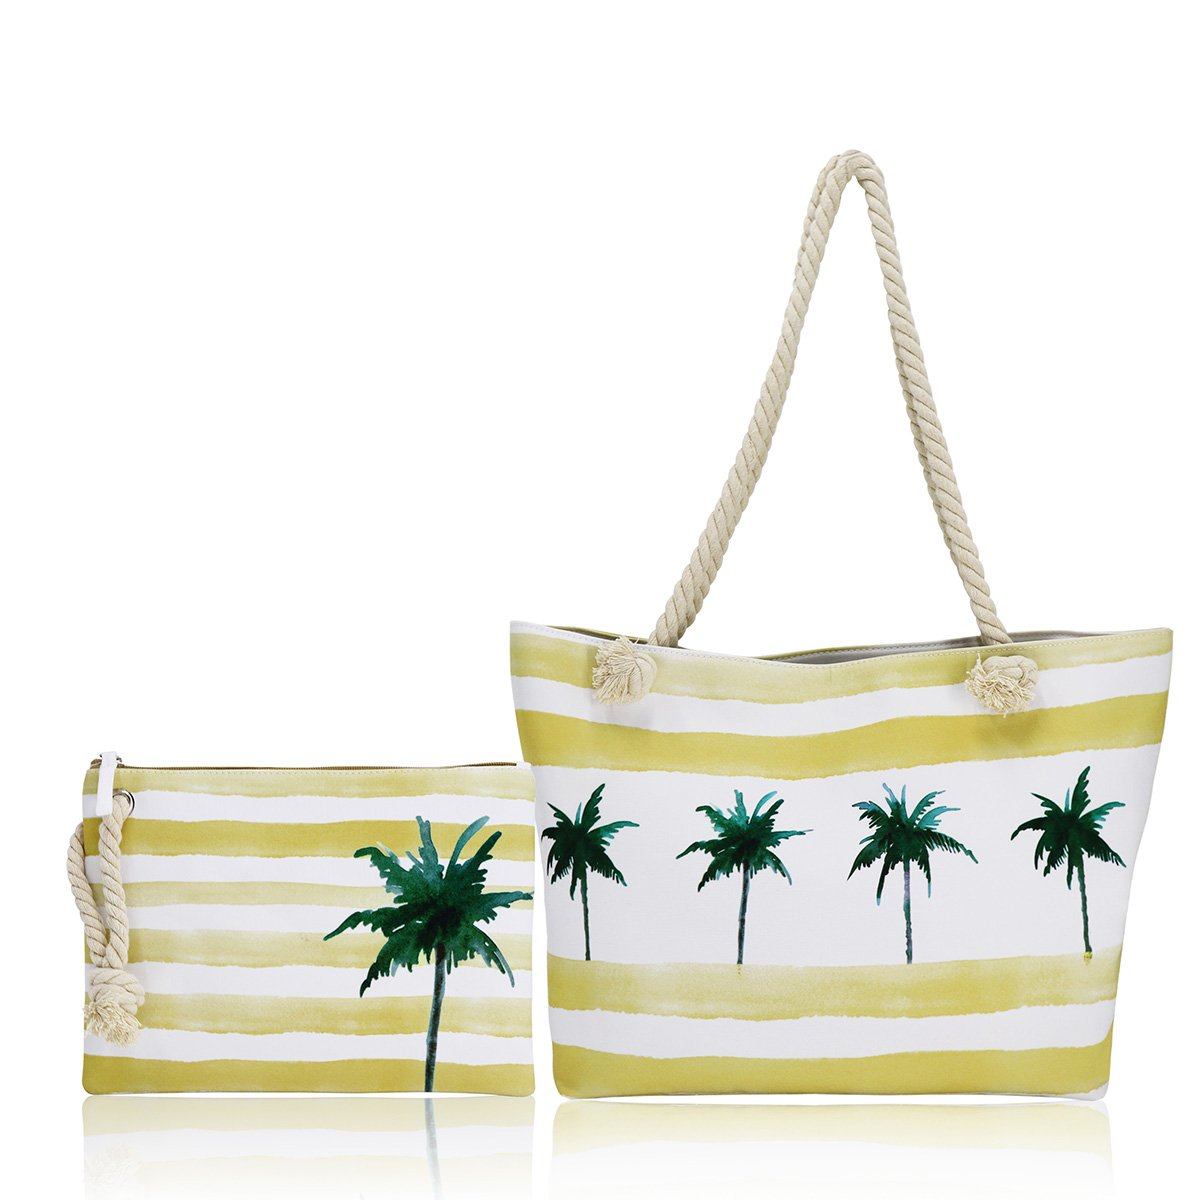 Large Canvas Beach Bag, A Canvas Bag Set with Small Waterproof Lining Tote Bag - Top Zipper Closure (Palm Tree Tote)